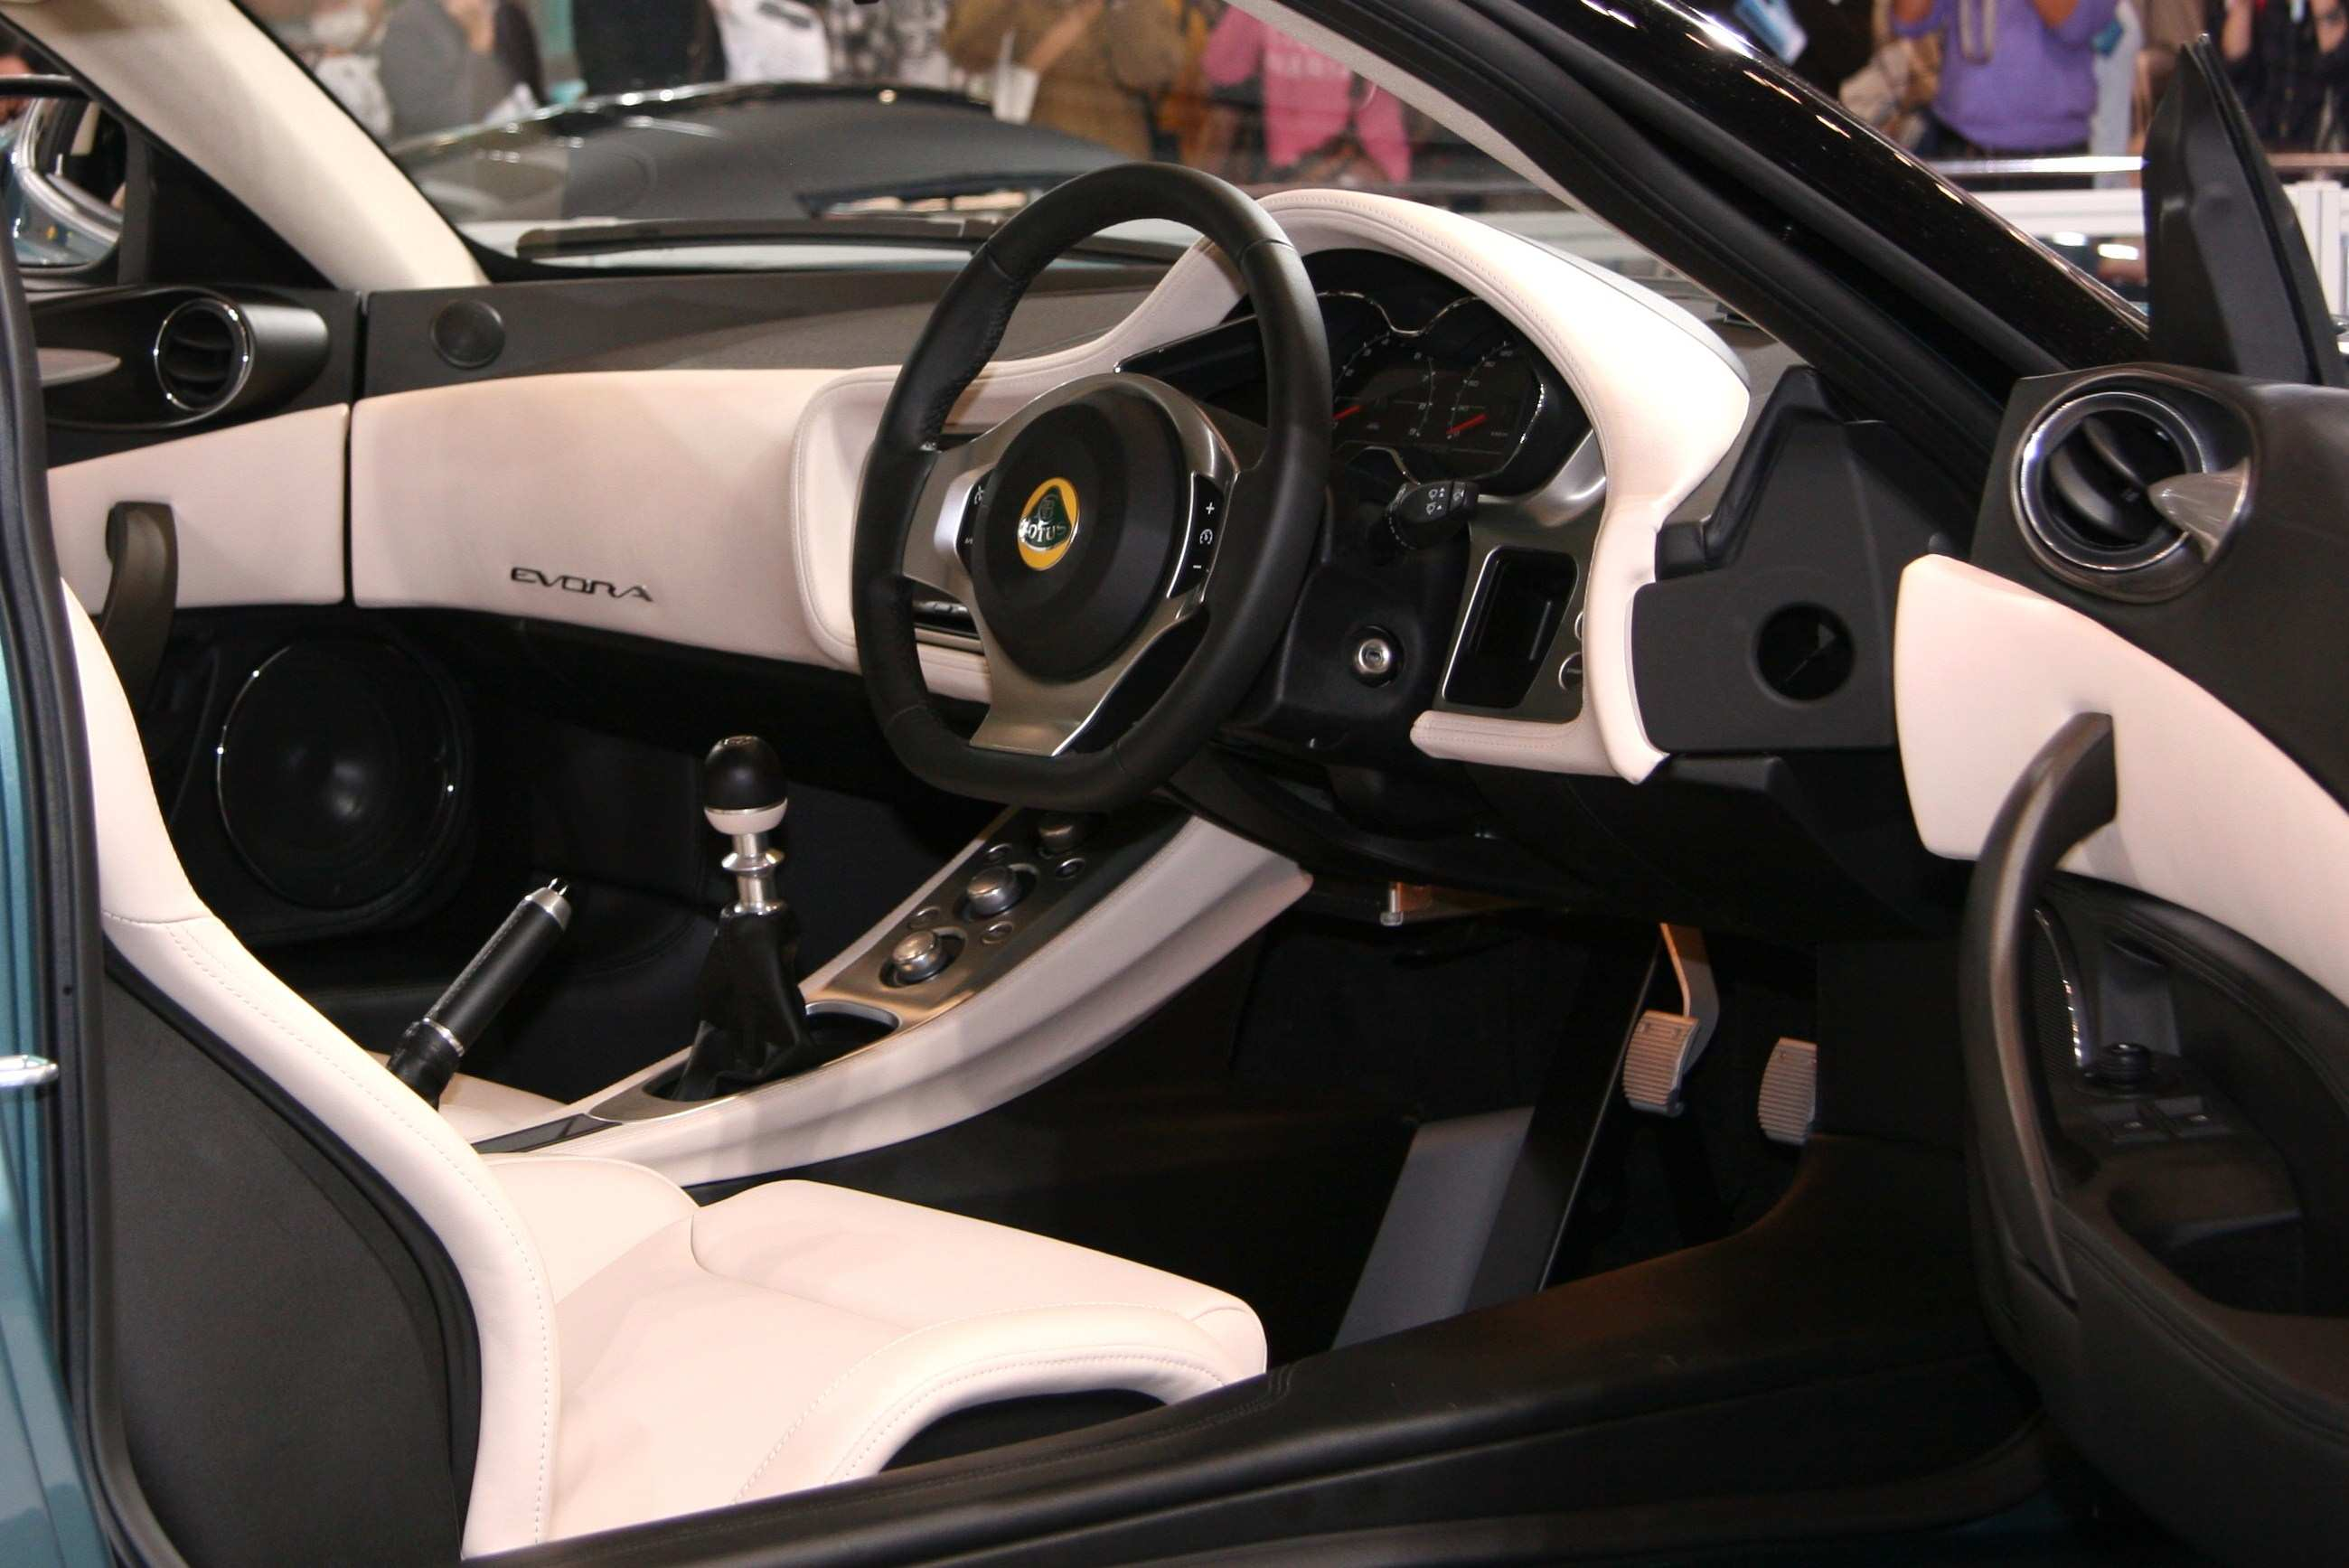 88 Best Review Lotus Evora Interior Engine with Lotus Evora Interior